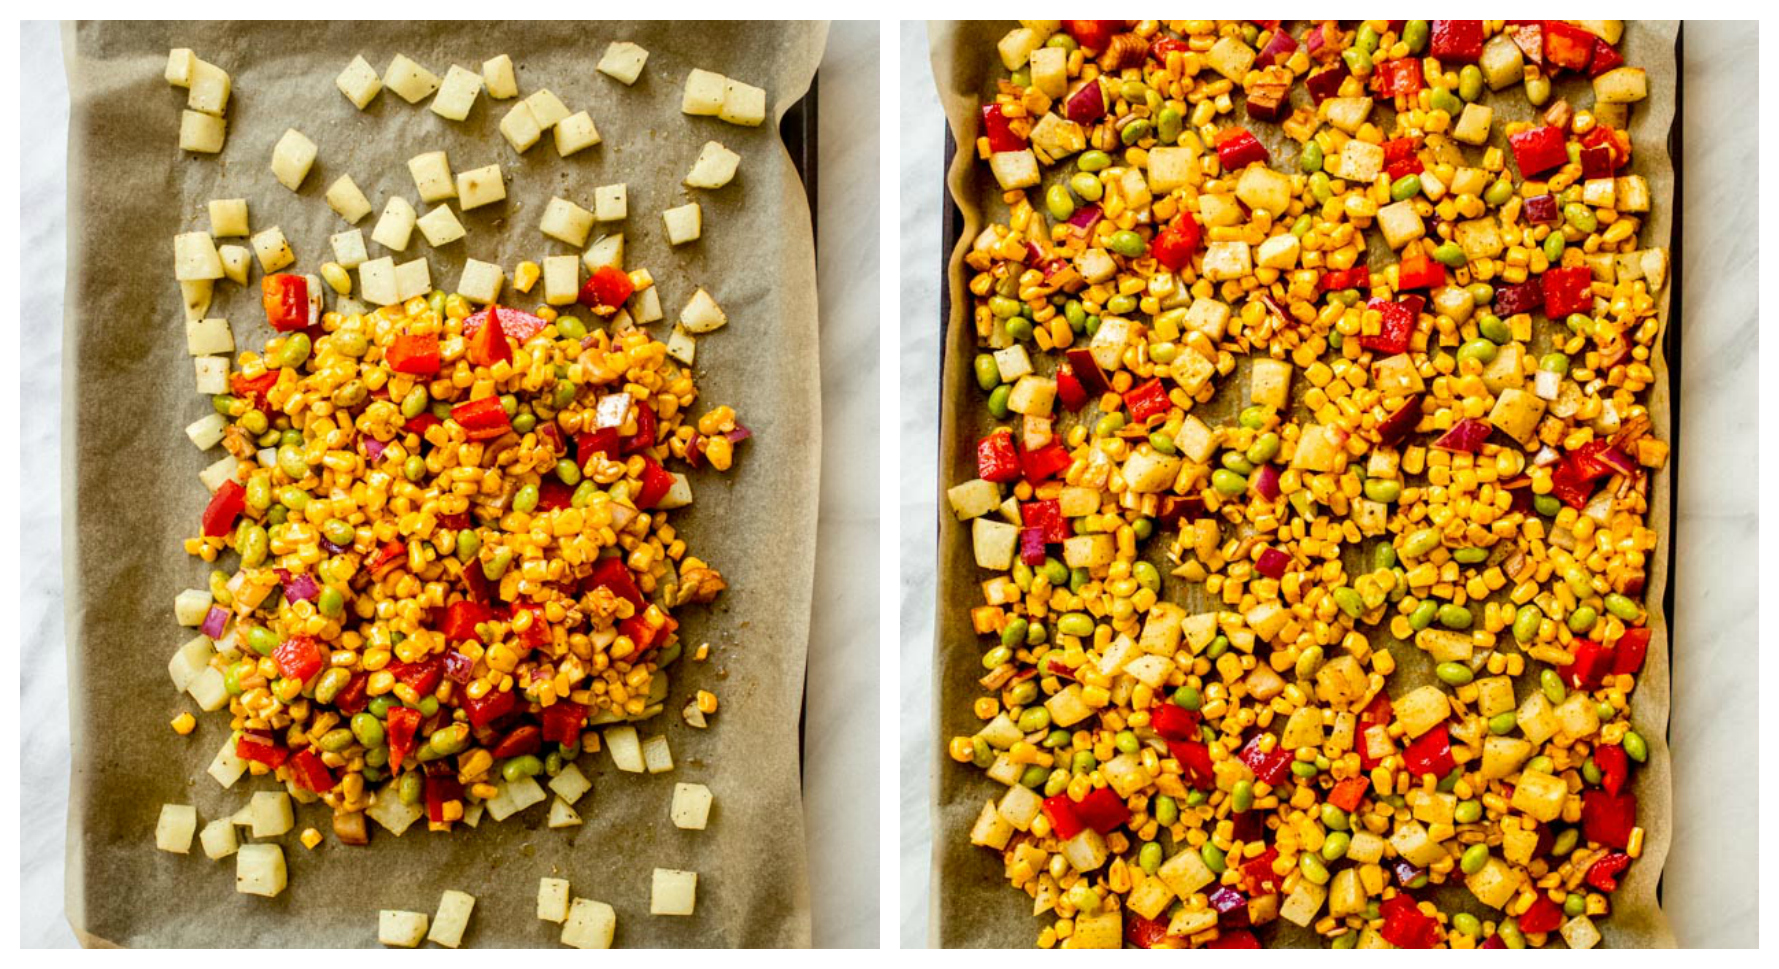 Corn succotash vegetables on a sheet pan